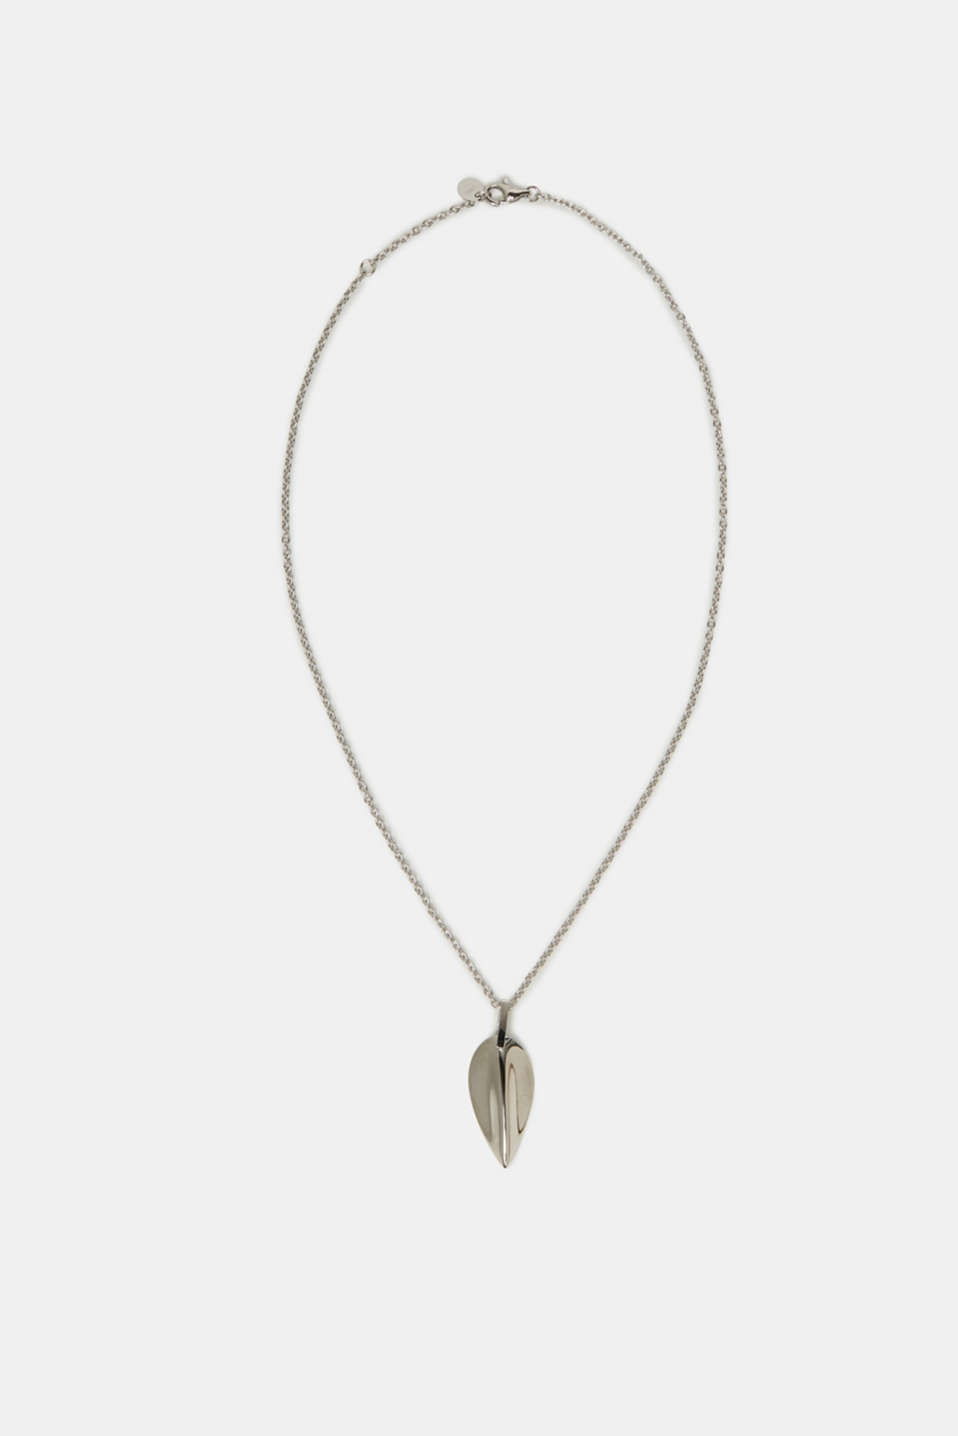 The leaf-shaped pendant makes this link chain the perfect everyday essential.